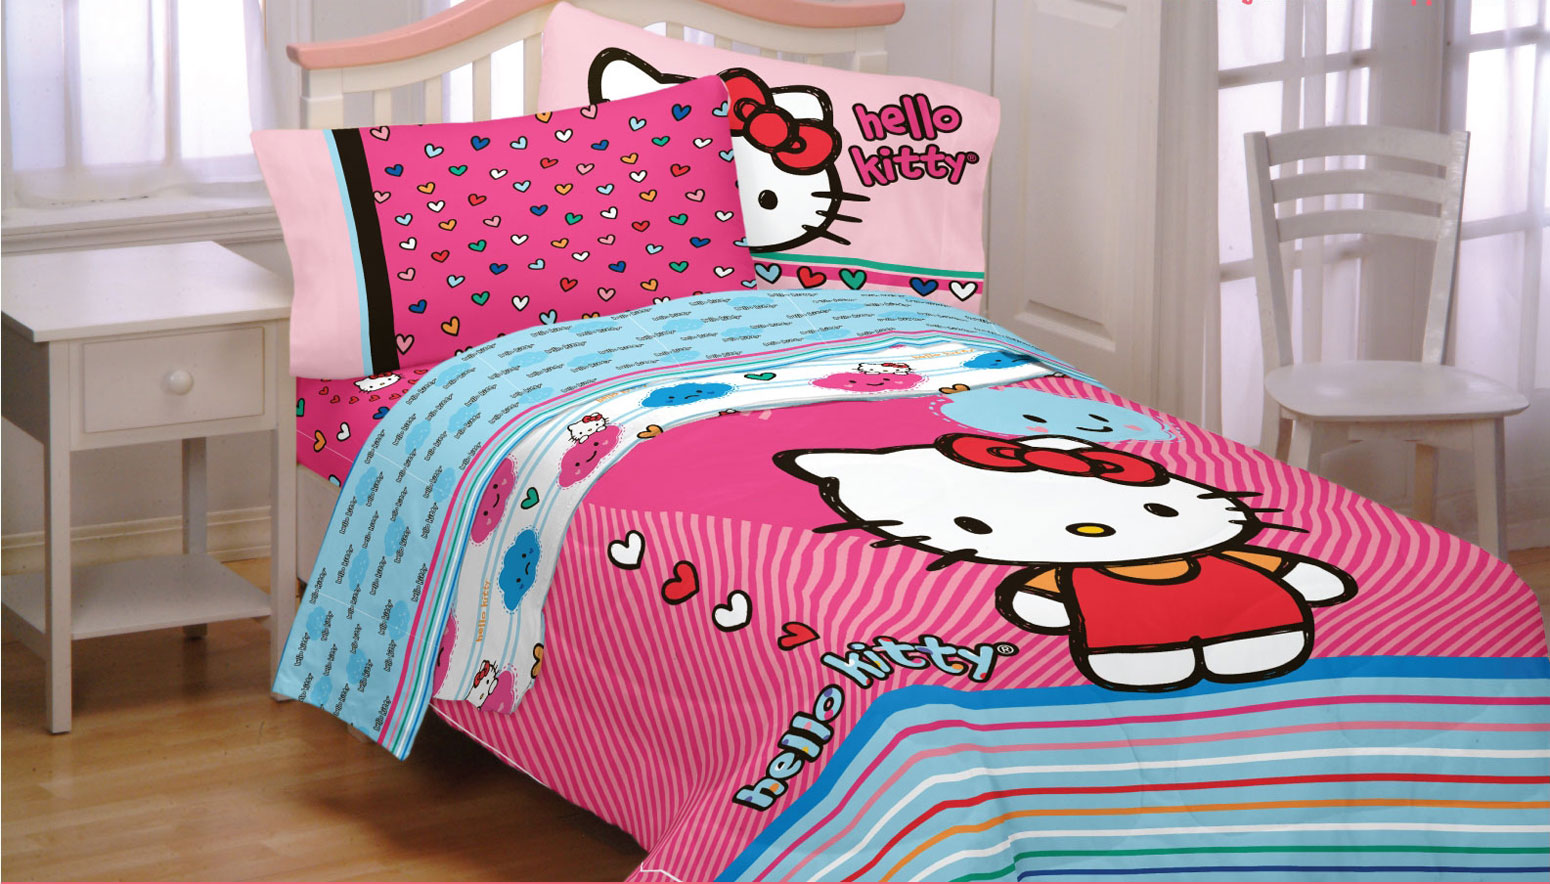 Sanrio Hello Kitty Bedding Set